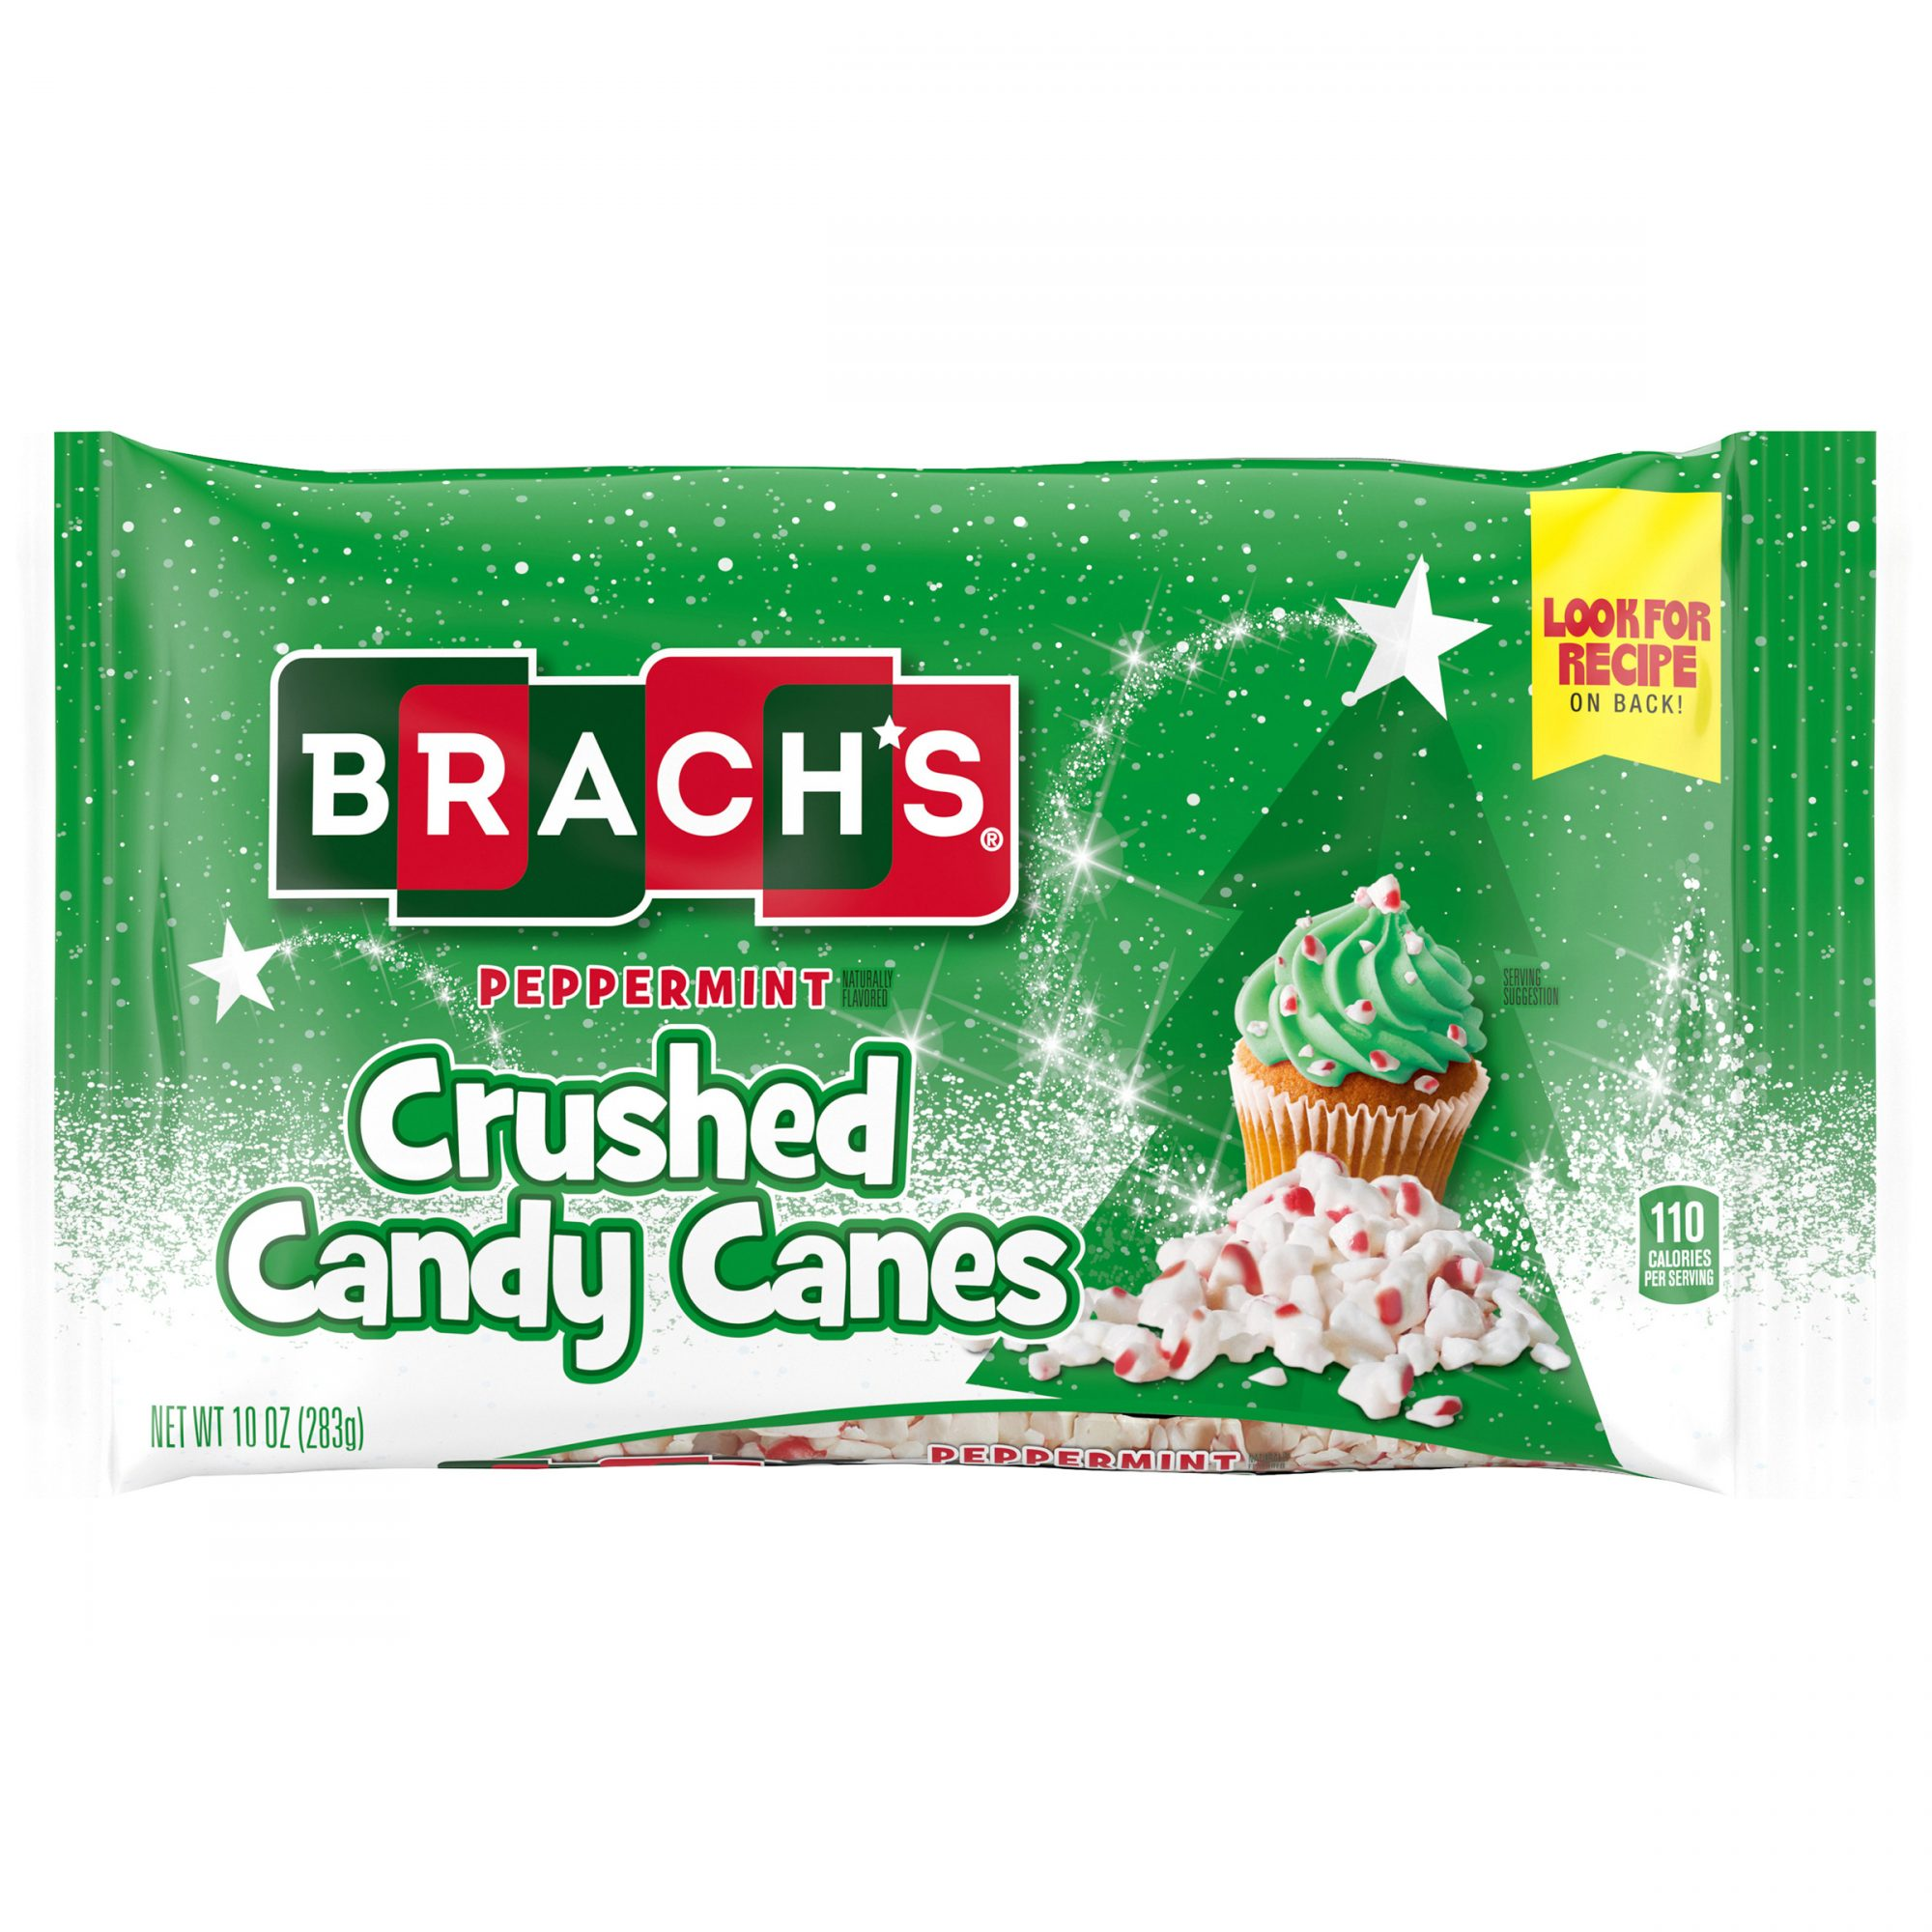 Brach's Crushed Candy Canes